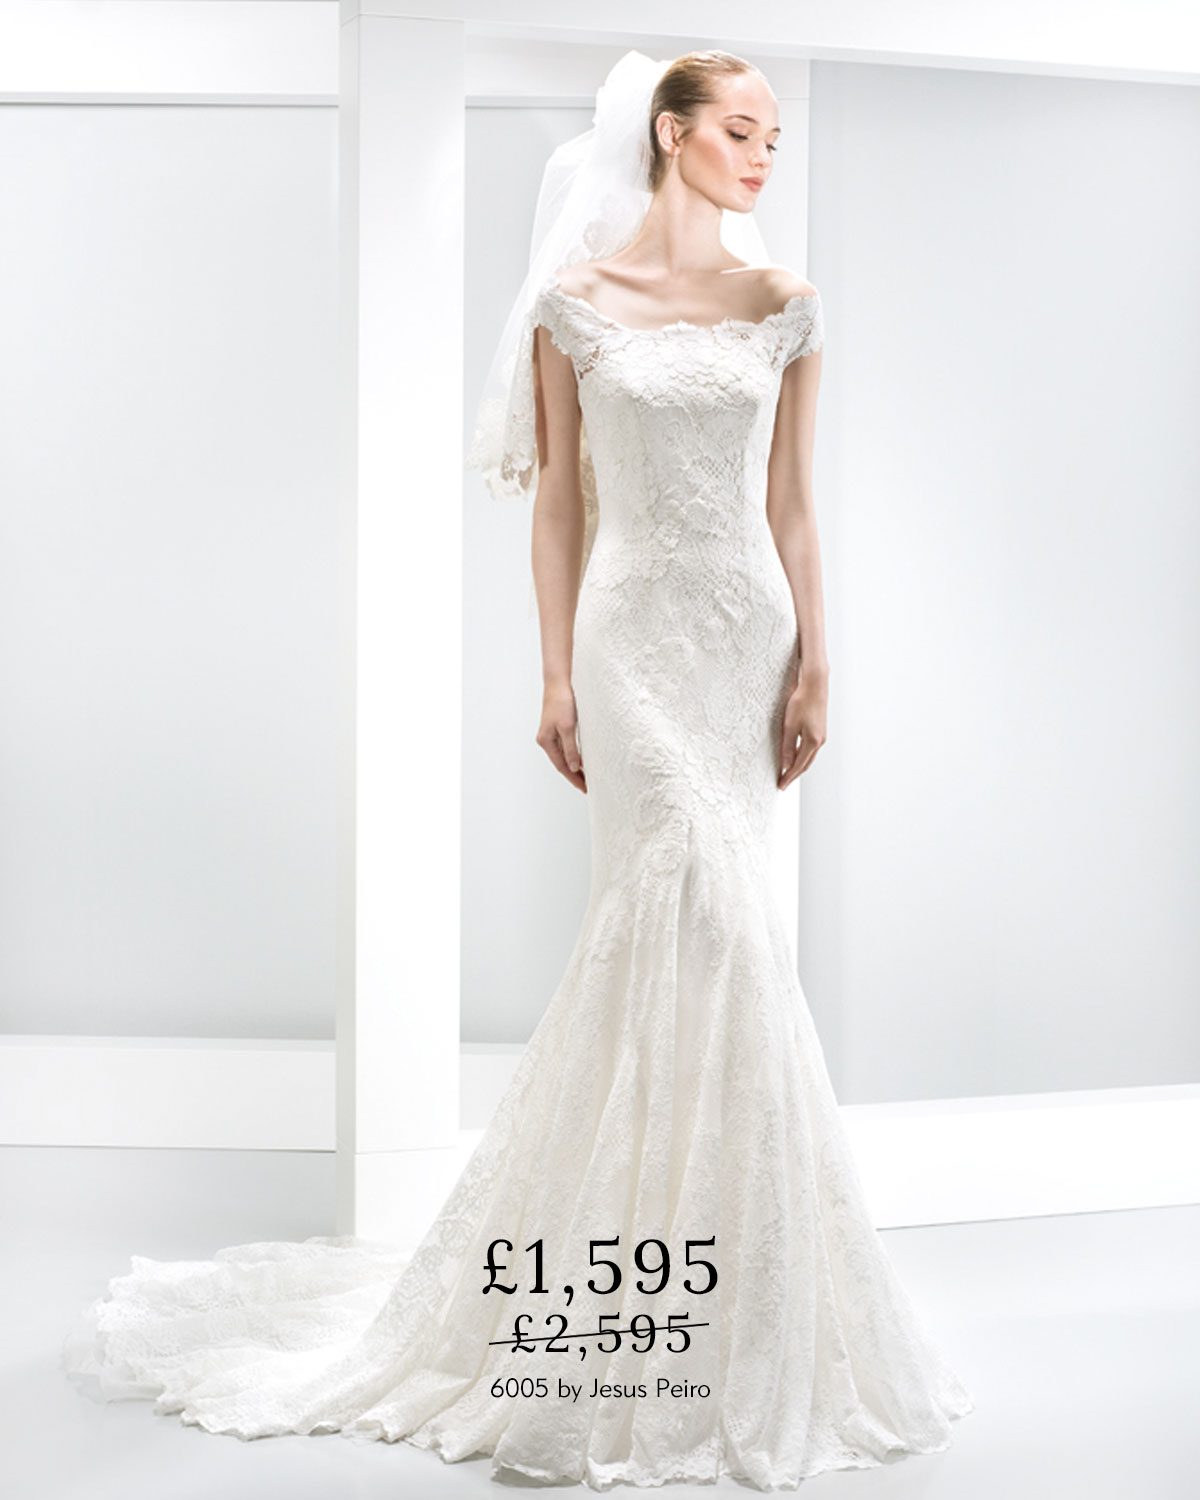 Top 20 Sample Sale Dresses The White Room